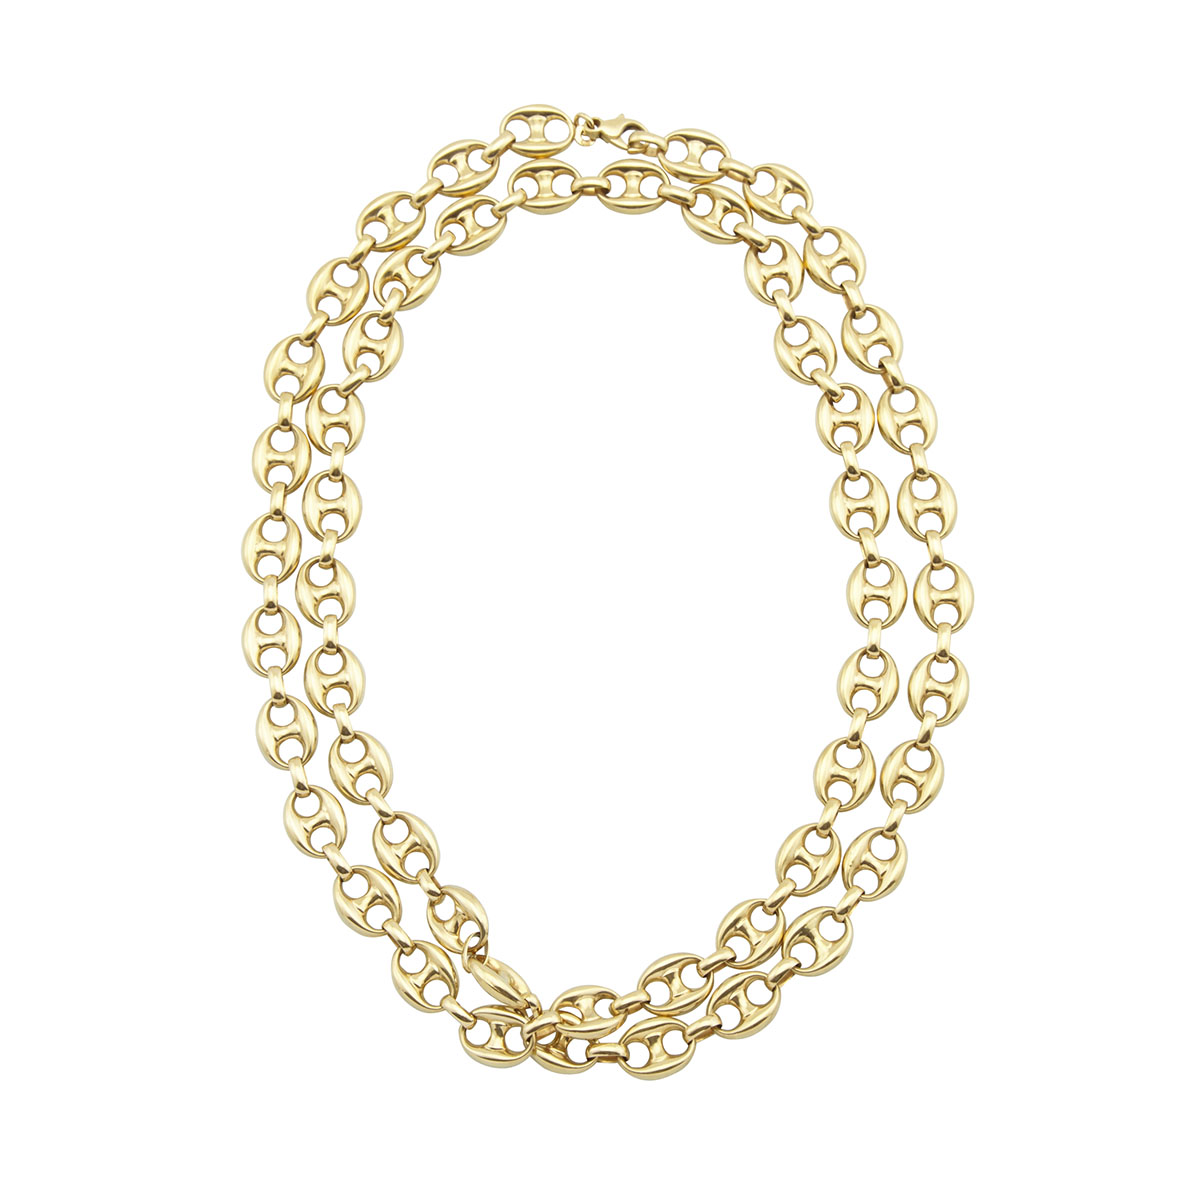 Italian 18k Yellow Gold Gucci-Style Link Chain